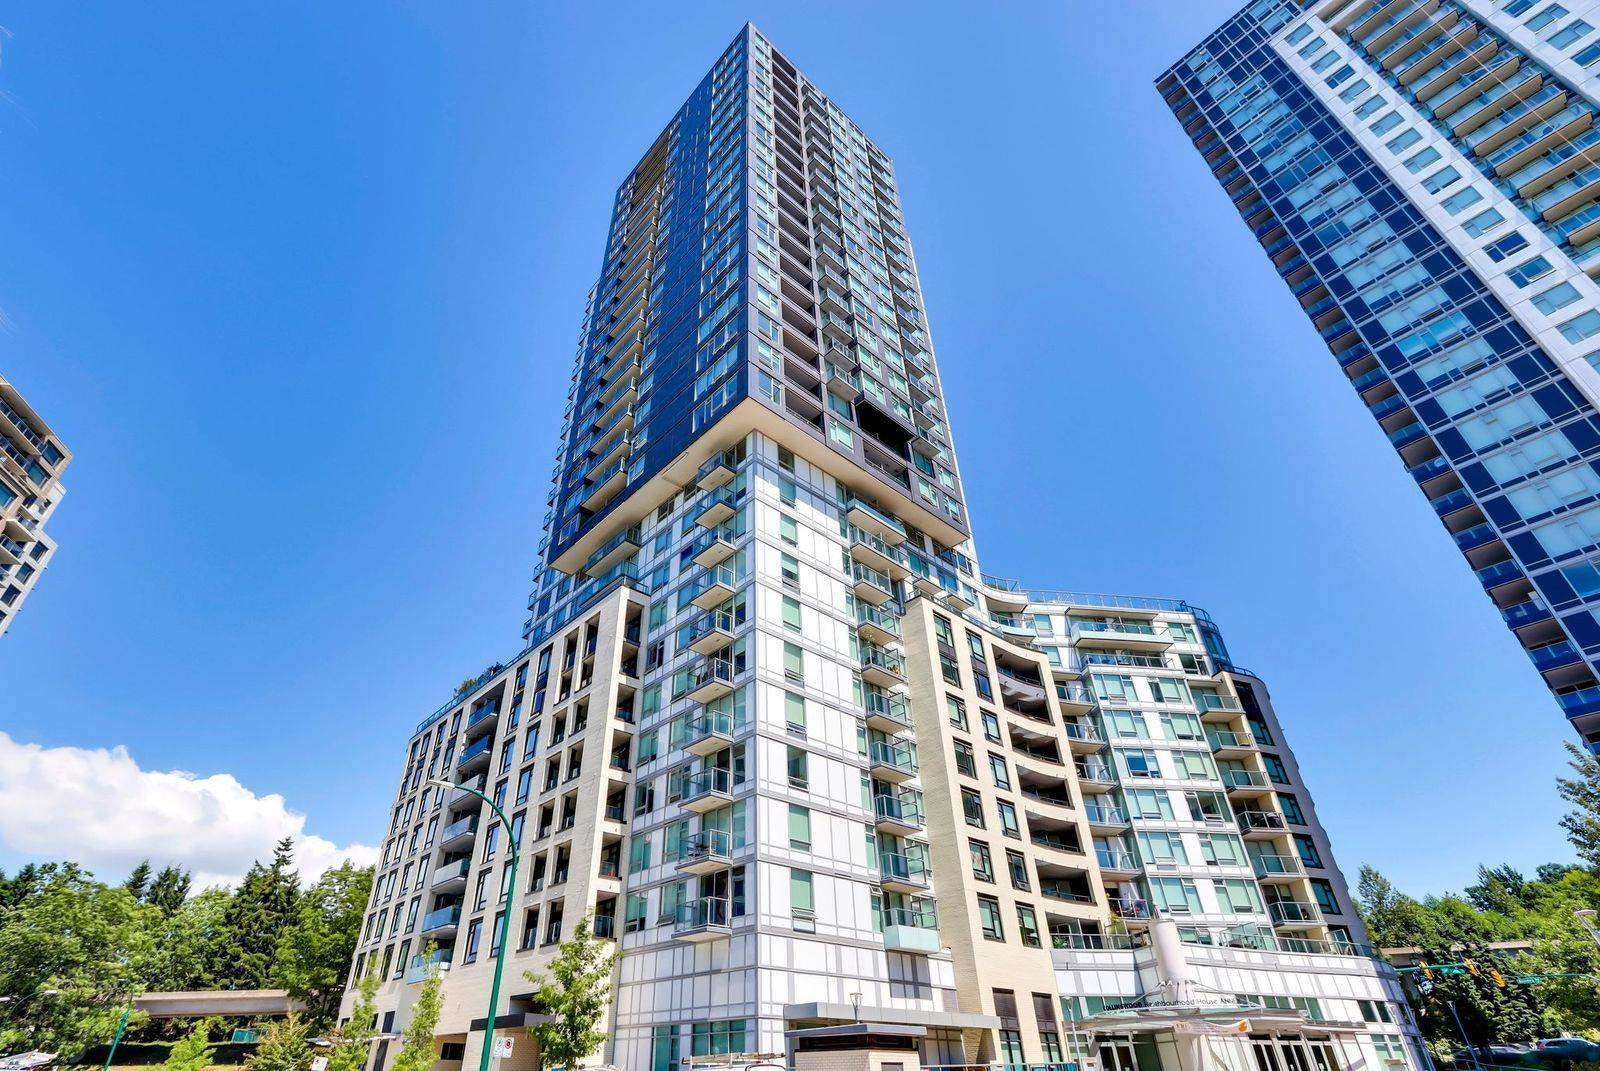 1103 5470 ORMIDALE STREET - Collingwood VE Apartment/Condo for sale, 1 Bedroom (R2595849)